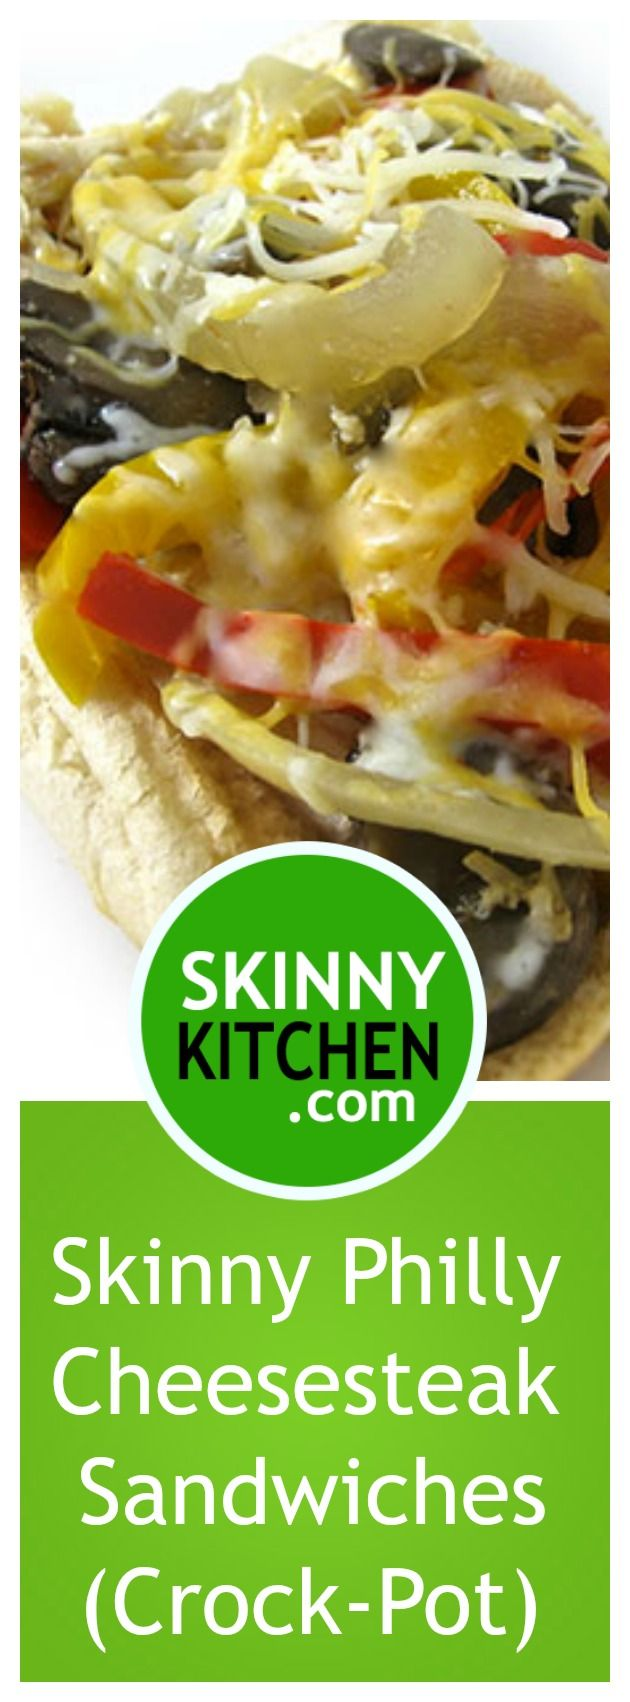 Skinny Philly Chicken Cheesesteak Sandwiches in the Crock-Pot. Each delicious, very filling sandwich has 280 calories, 7g fat and 7 SmartPoints. https://www.skinnykitchen.com/recipes/skinny-philly-chicken-cheesesteak-sandwiches-in-the-crock-pot/